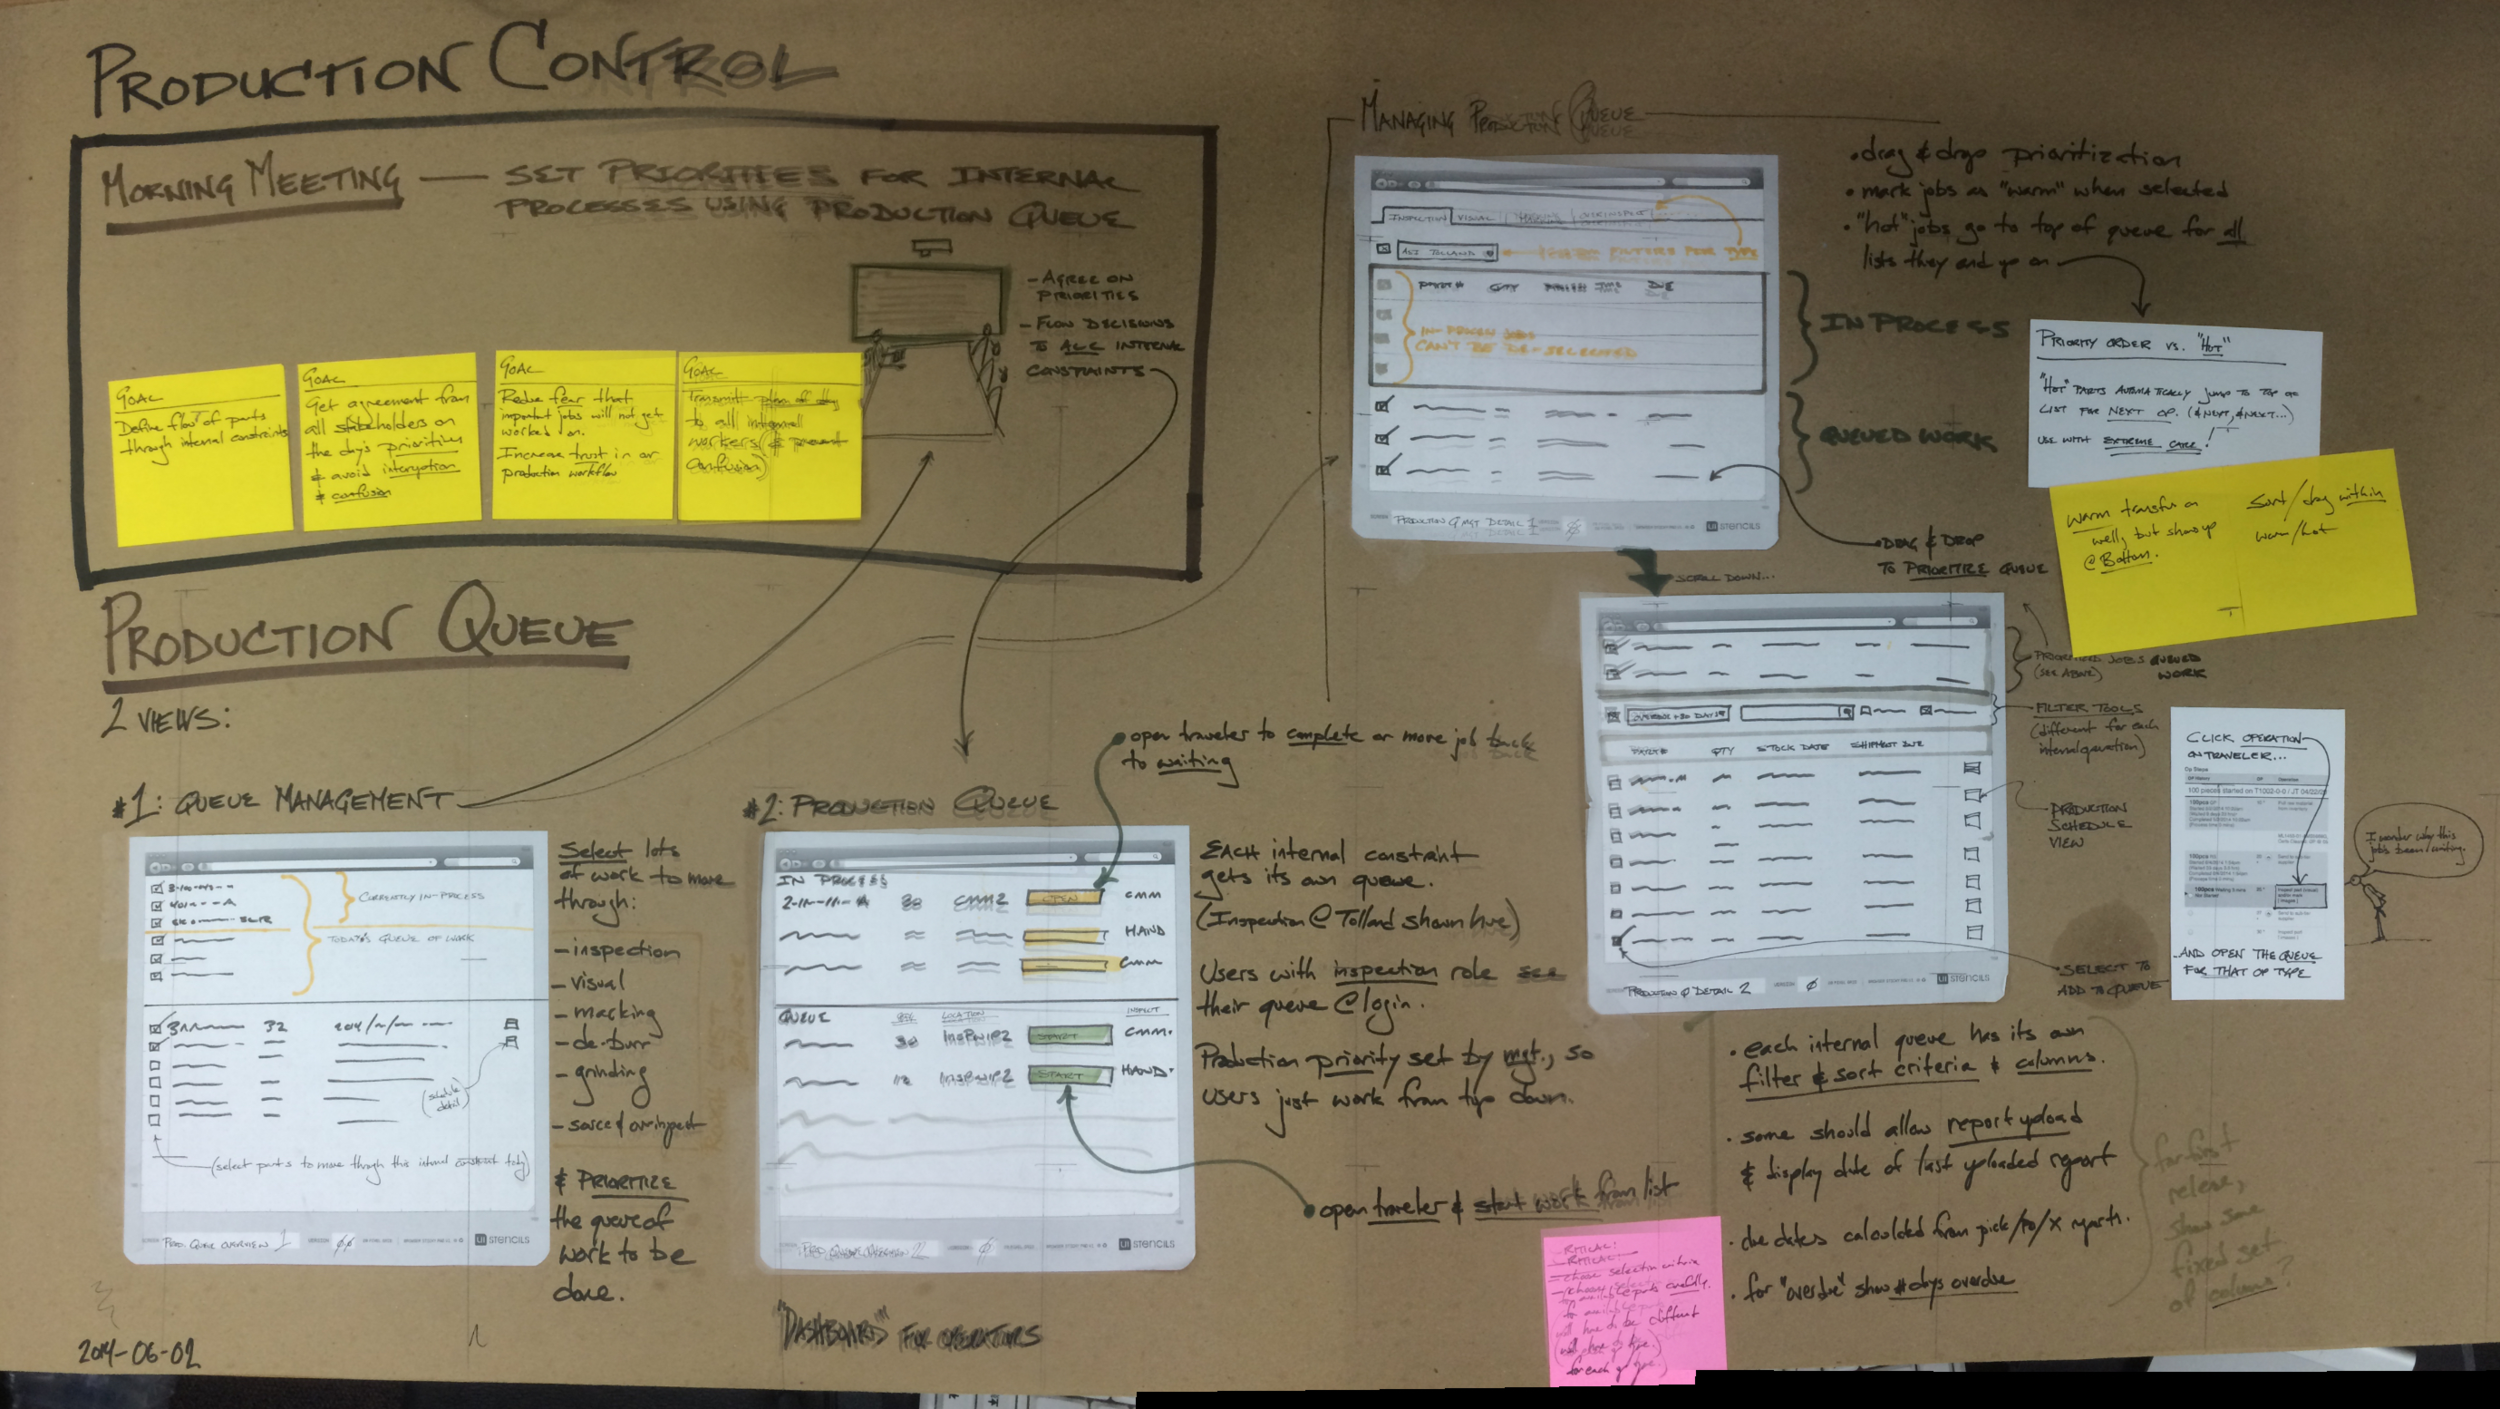 "The Production Queue was sketched together with a production manager on a whiteboard. Its initial purpose was to be an ""Action This Day"" list, but has since migrated to more of a way of managing everything active throughout the business."